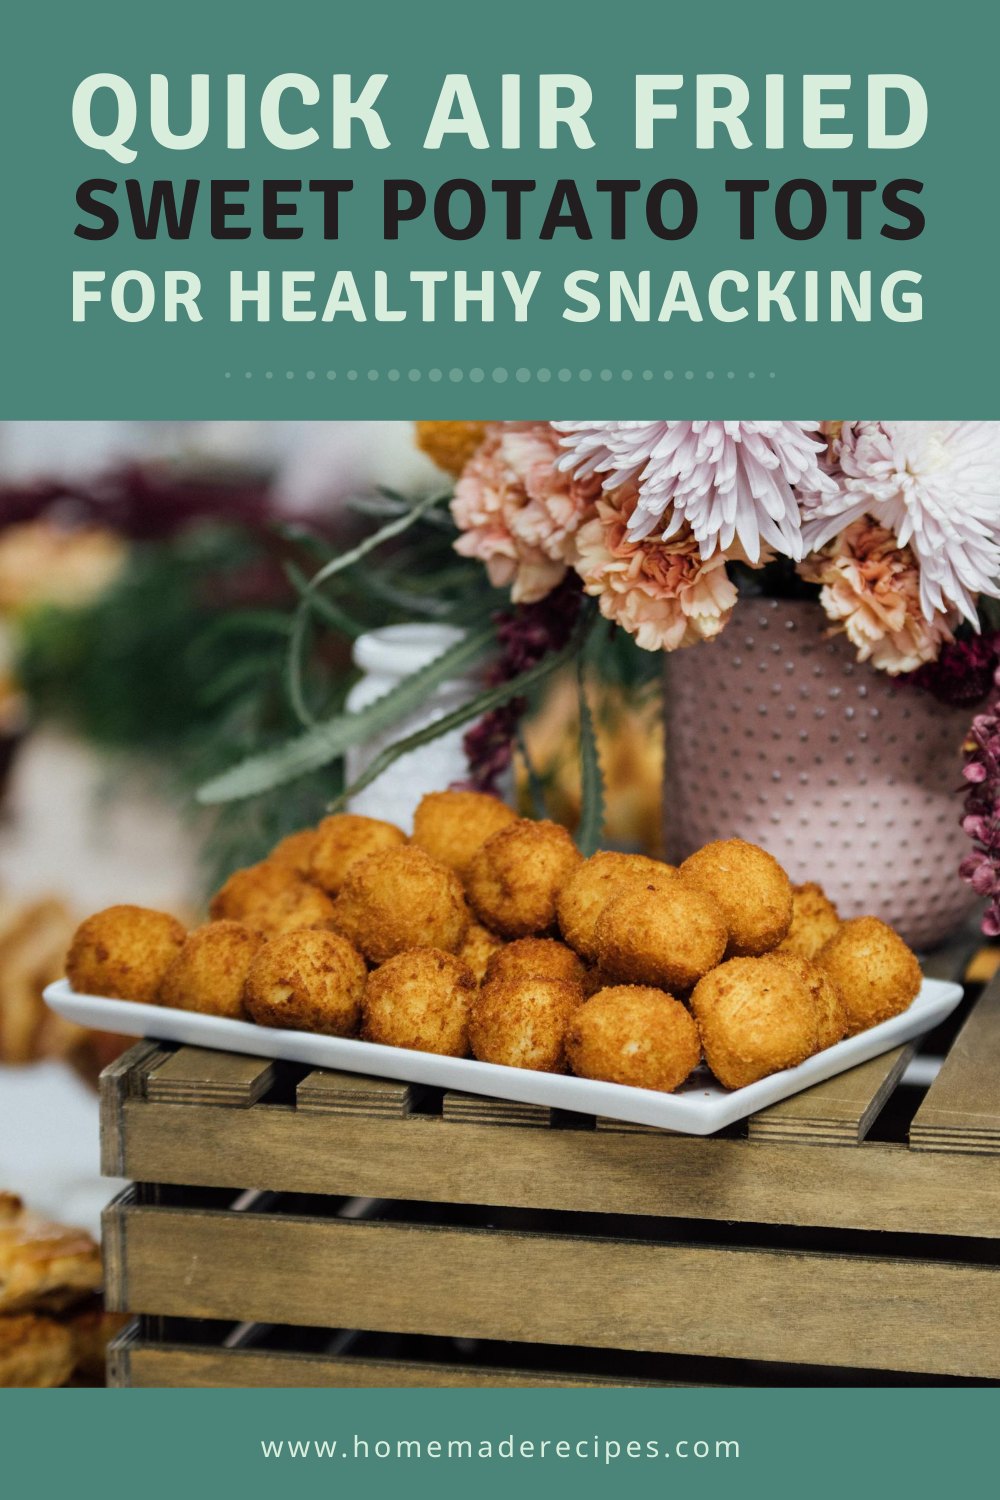 placard | Quick Air Fried Sweet Potato Tots Recipes For Healthy Snacking